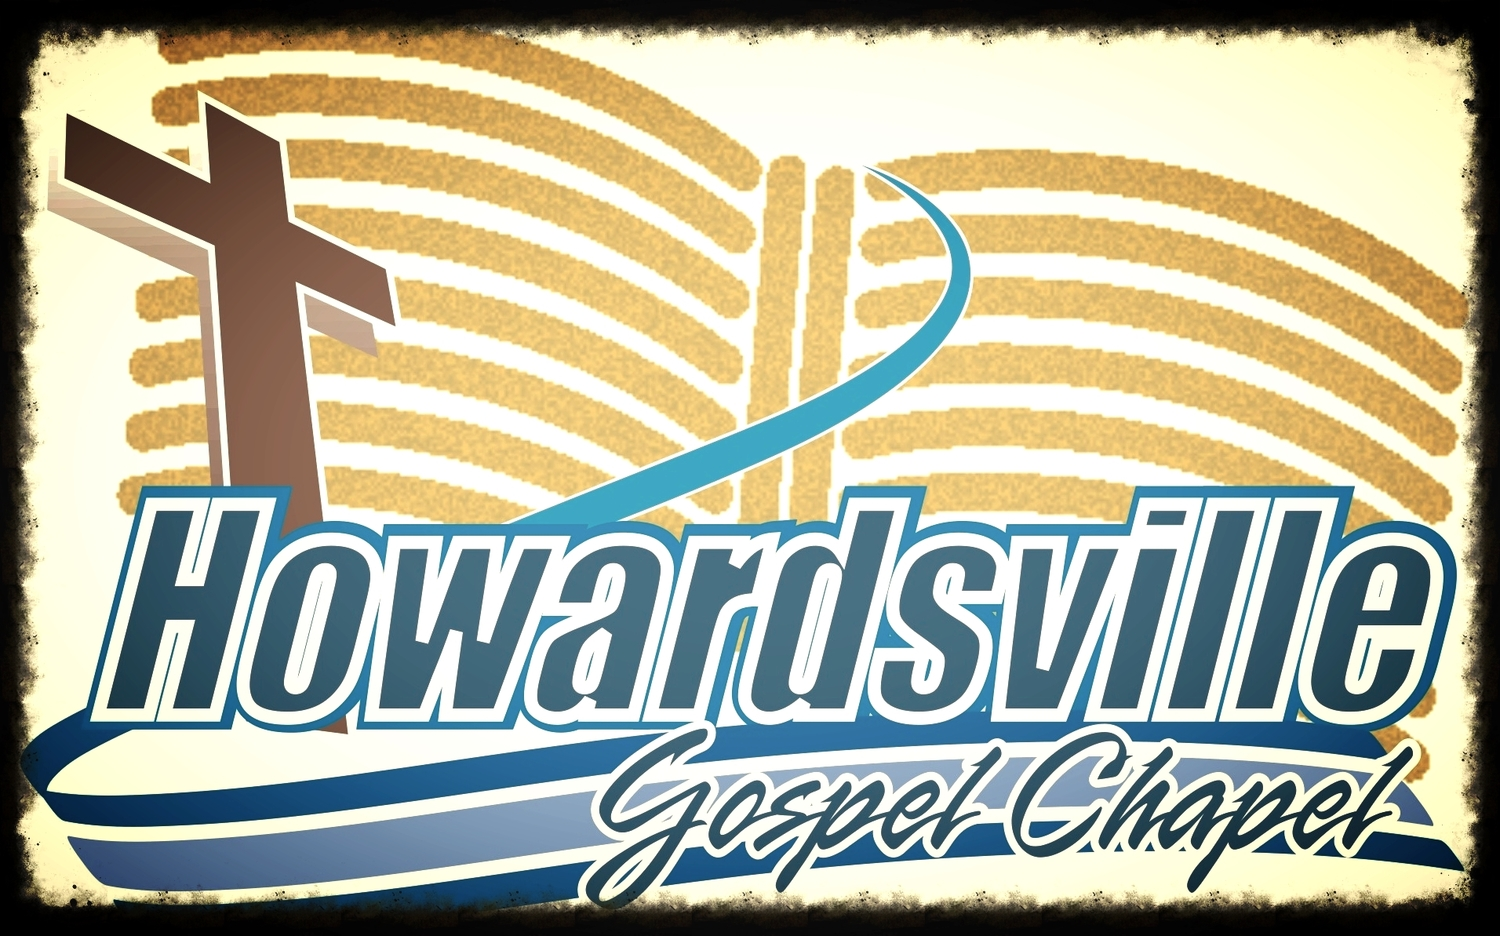 Howardsville Gospel Chapel